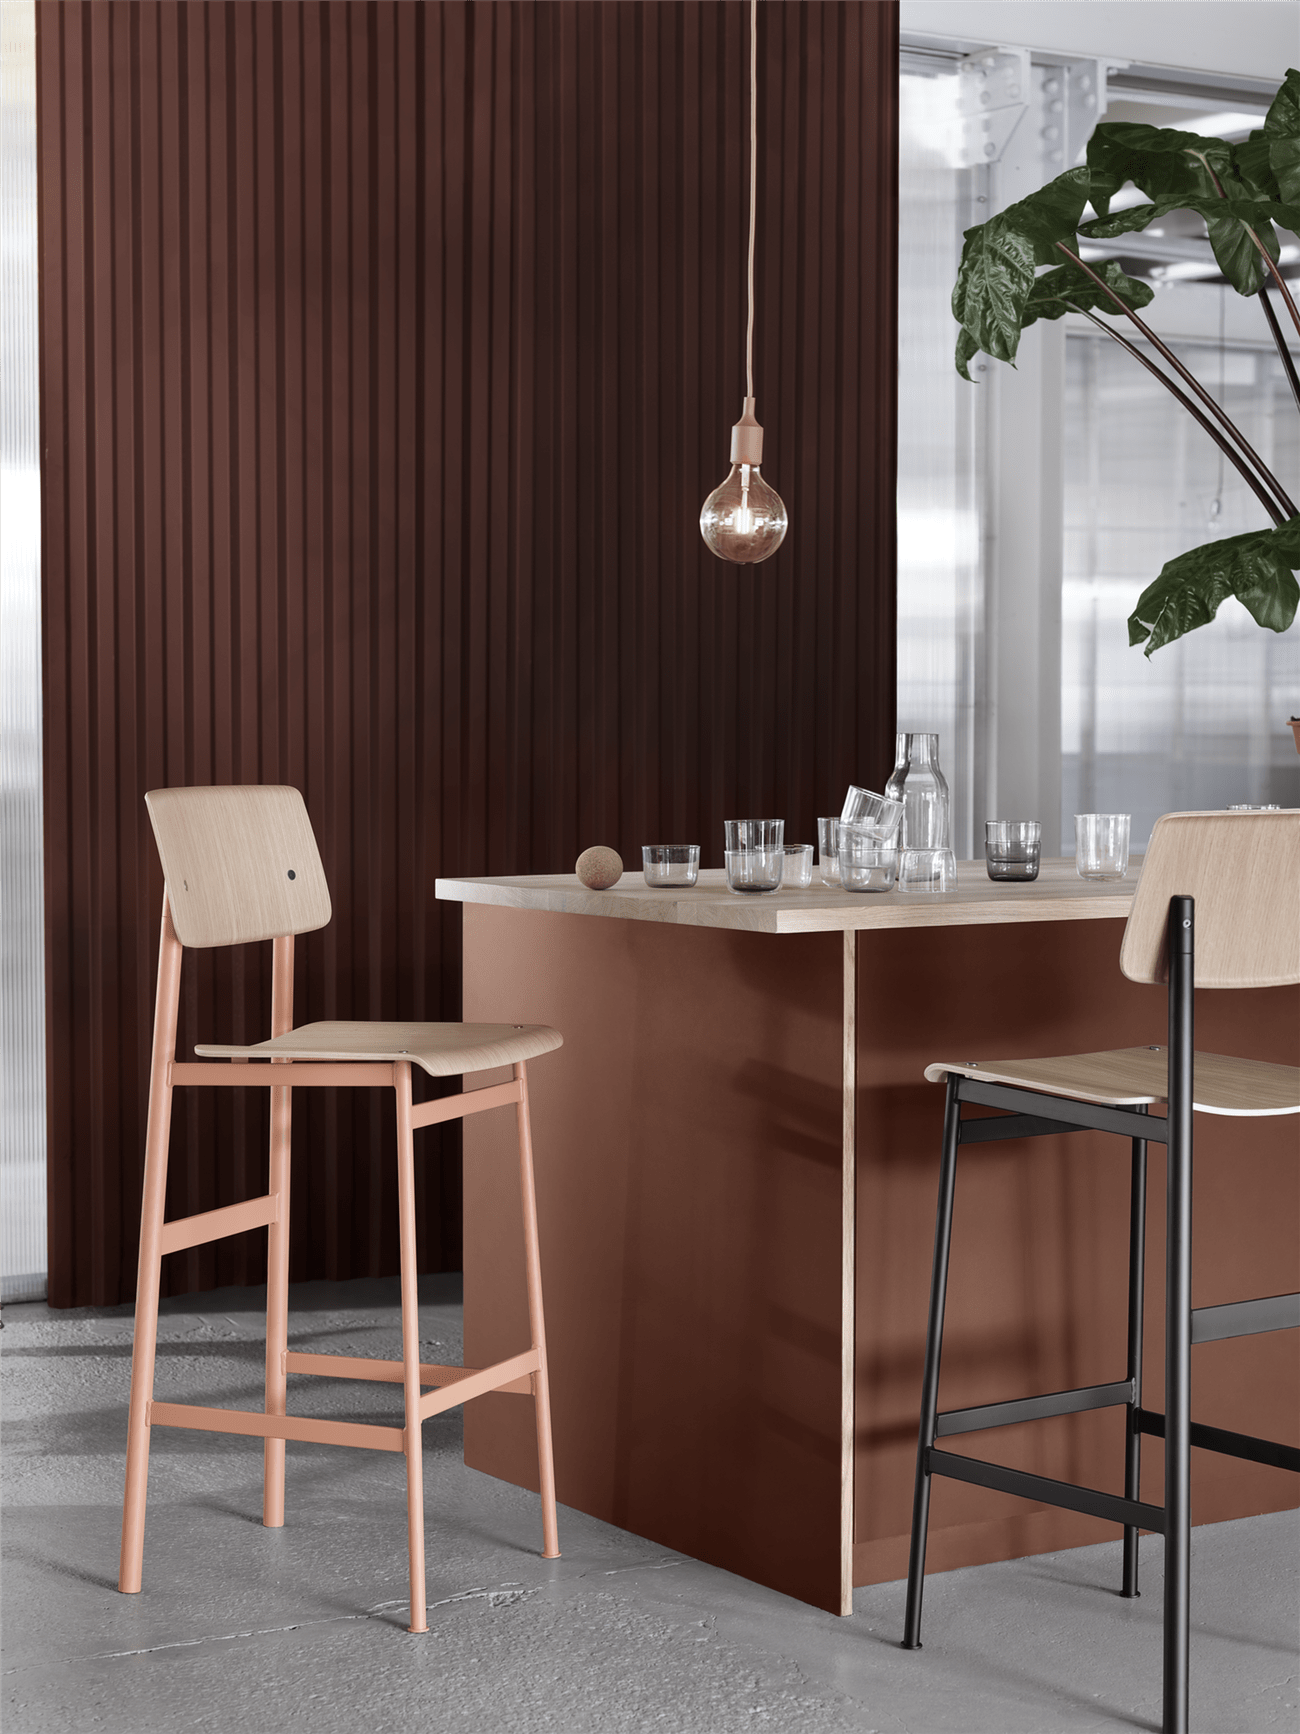 Where To Find The Best Bar Stools The Domino Guide Cool Bar Stools Mid Century Bar Stools Bar Stools